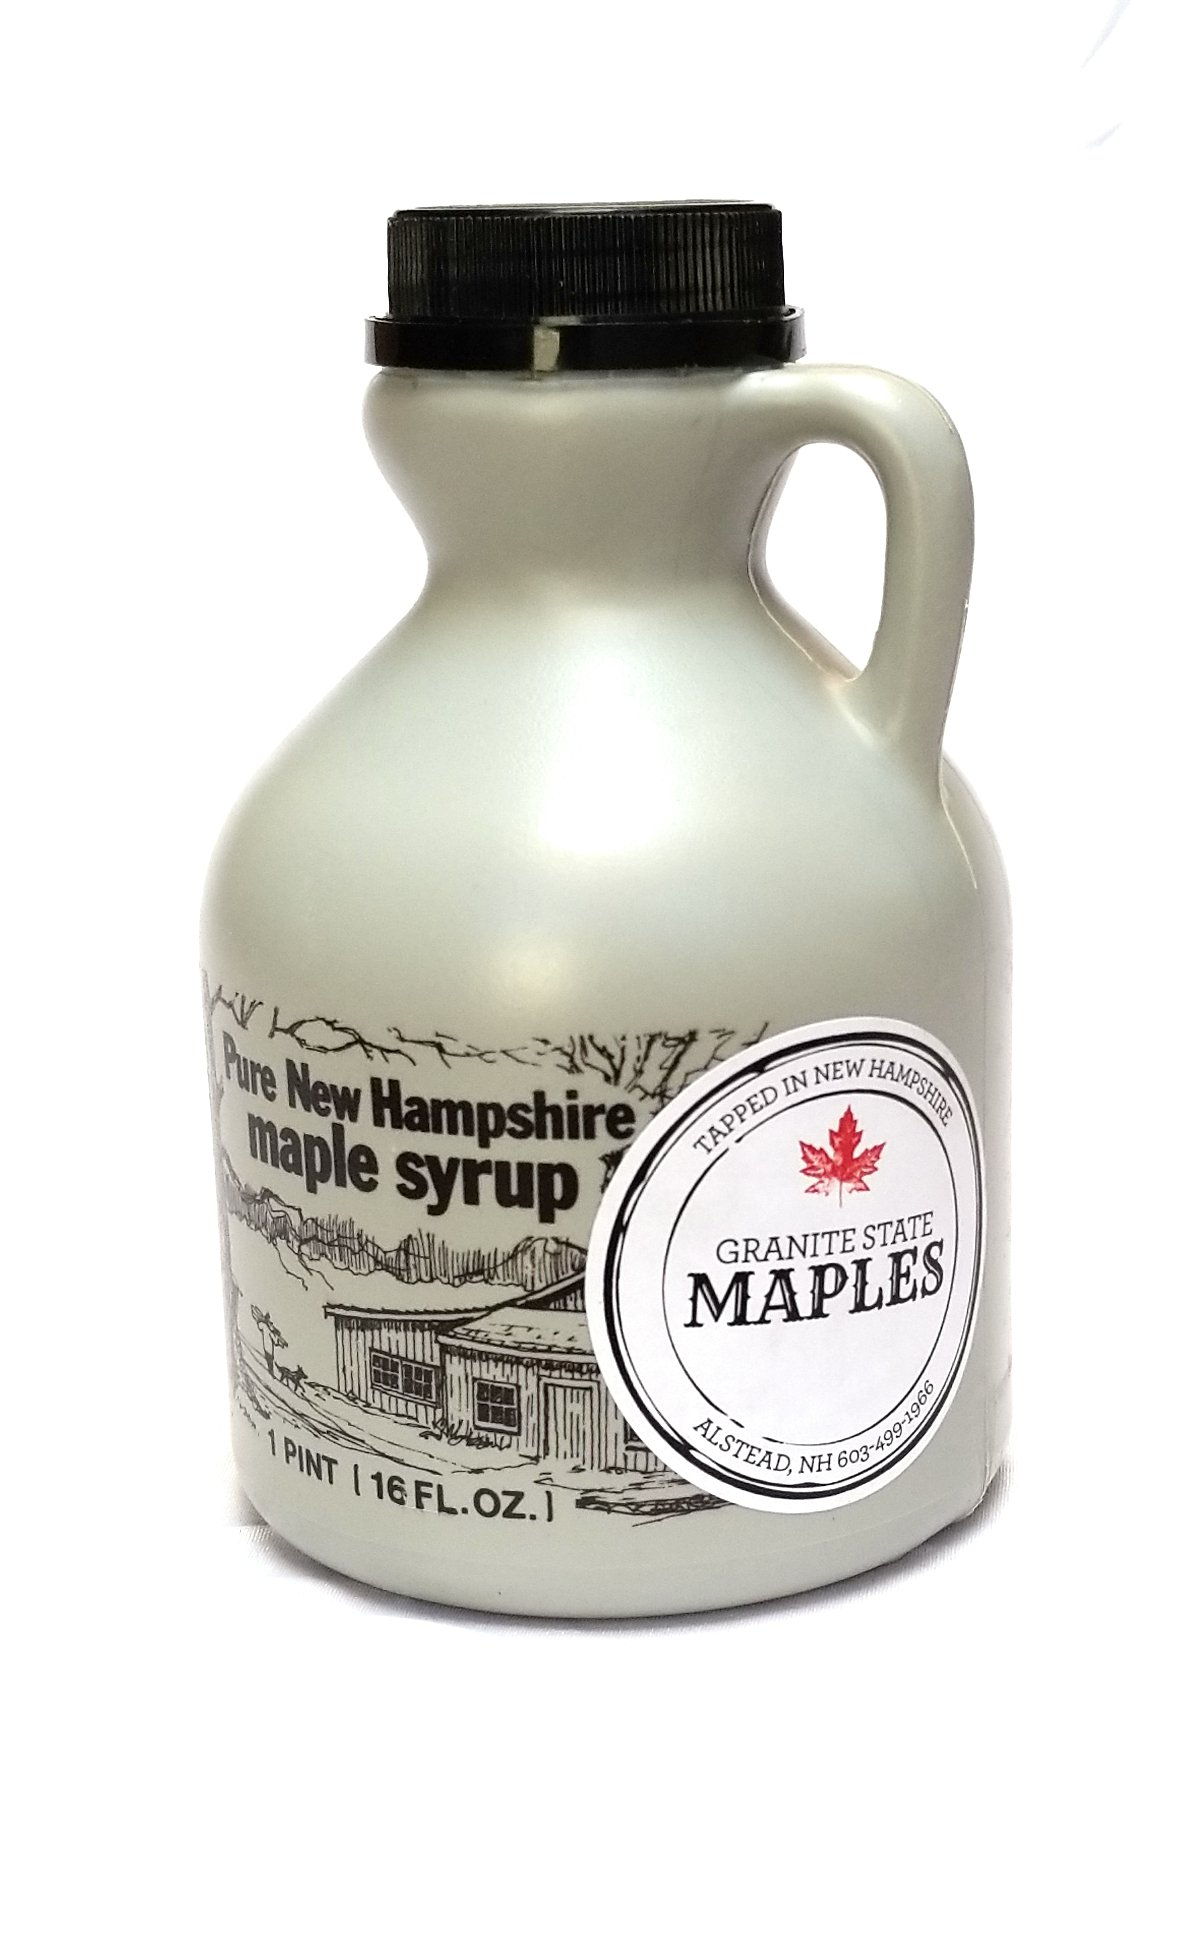 Granite State Maples 16Fl Oz.(1 Pint) Pure New Hampshire Maple Syrup, Grade A